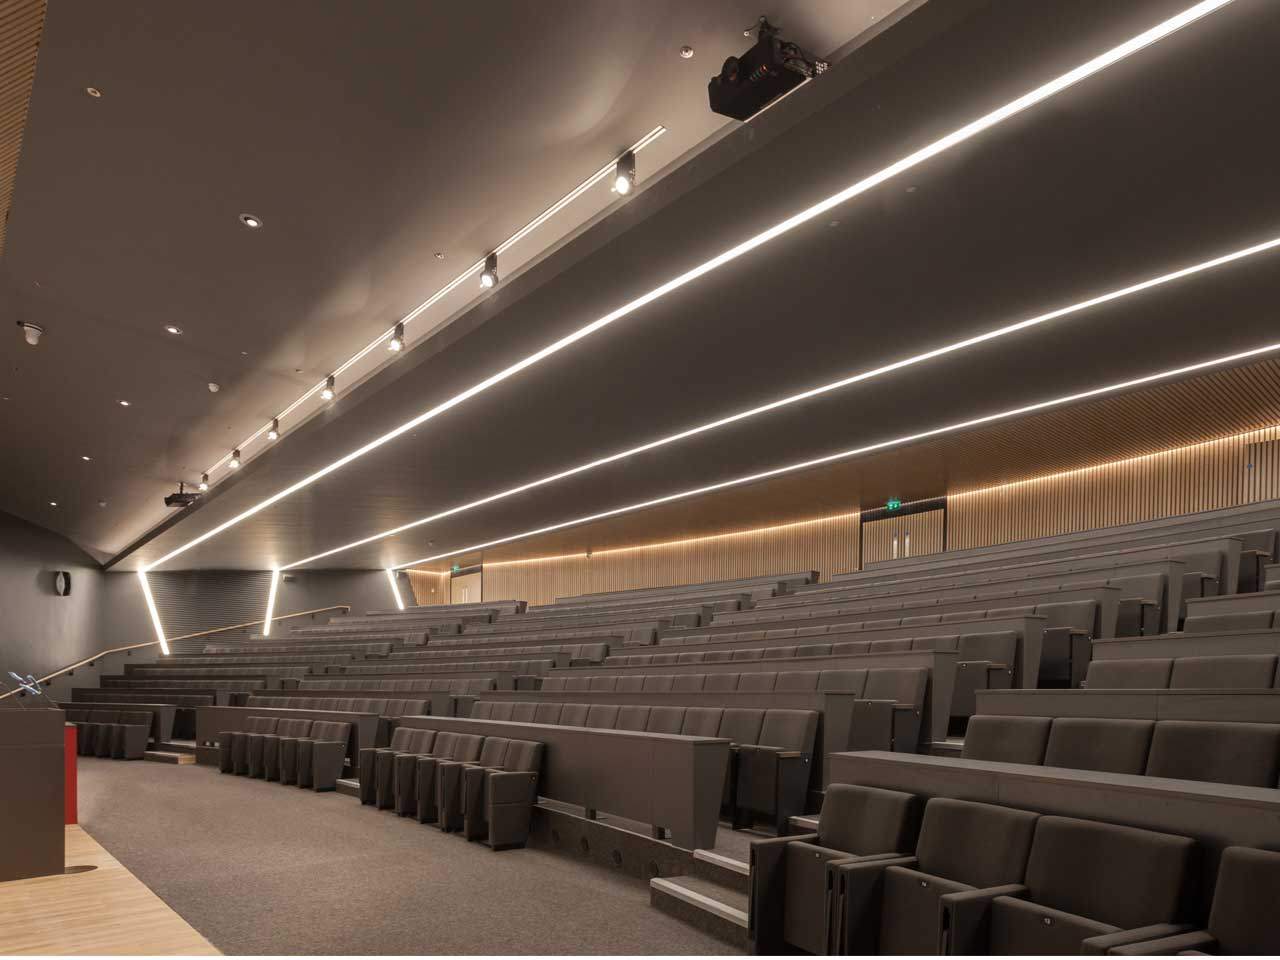 The continuous lines of light provide a stunning view on entry into the auditorium